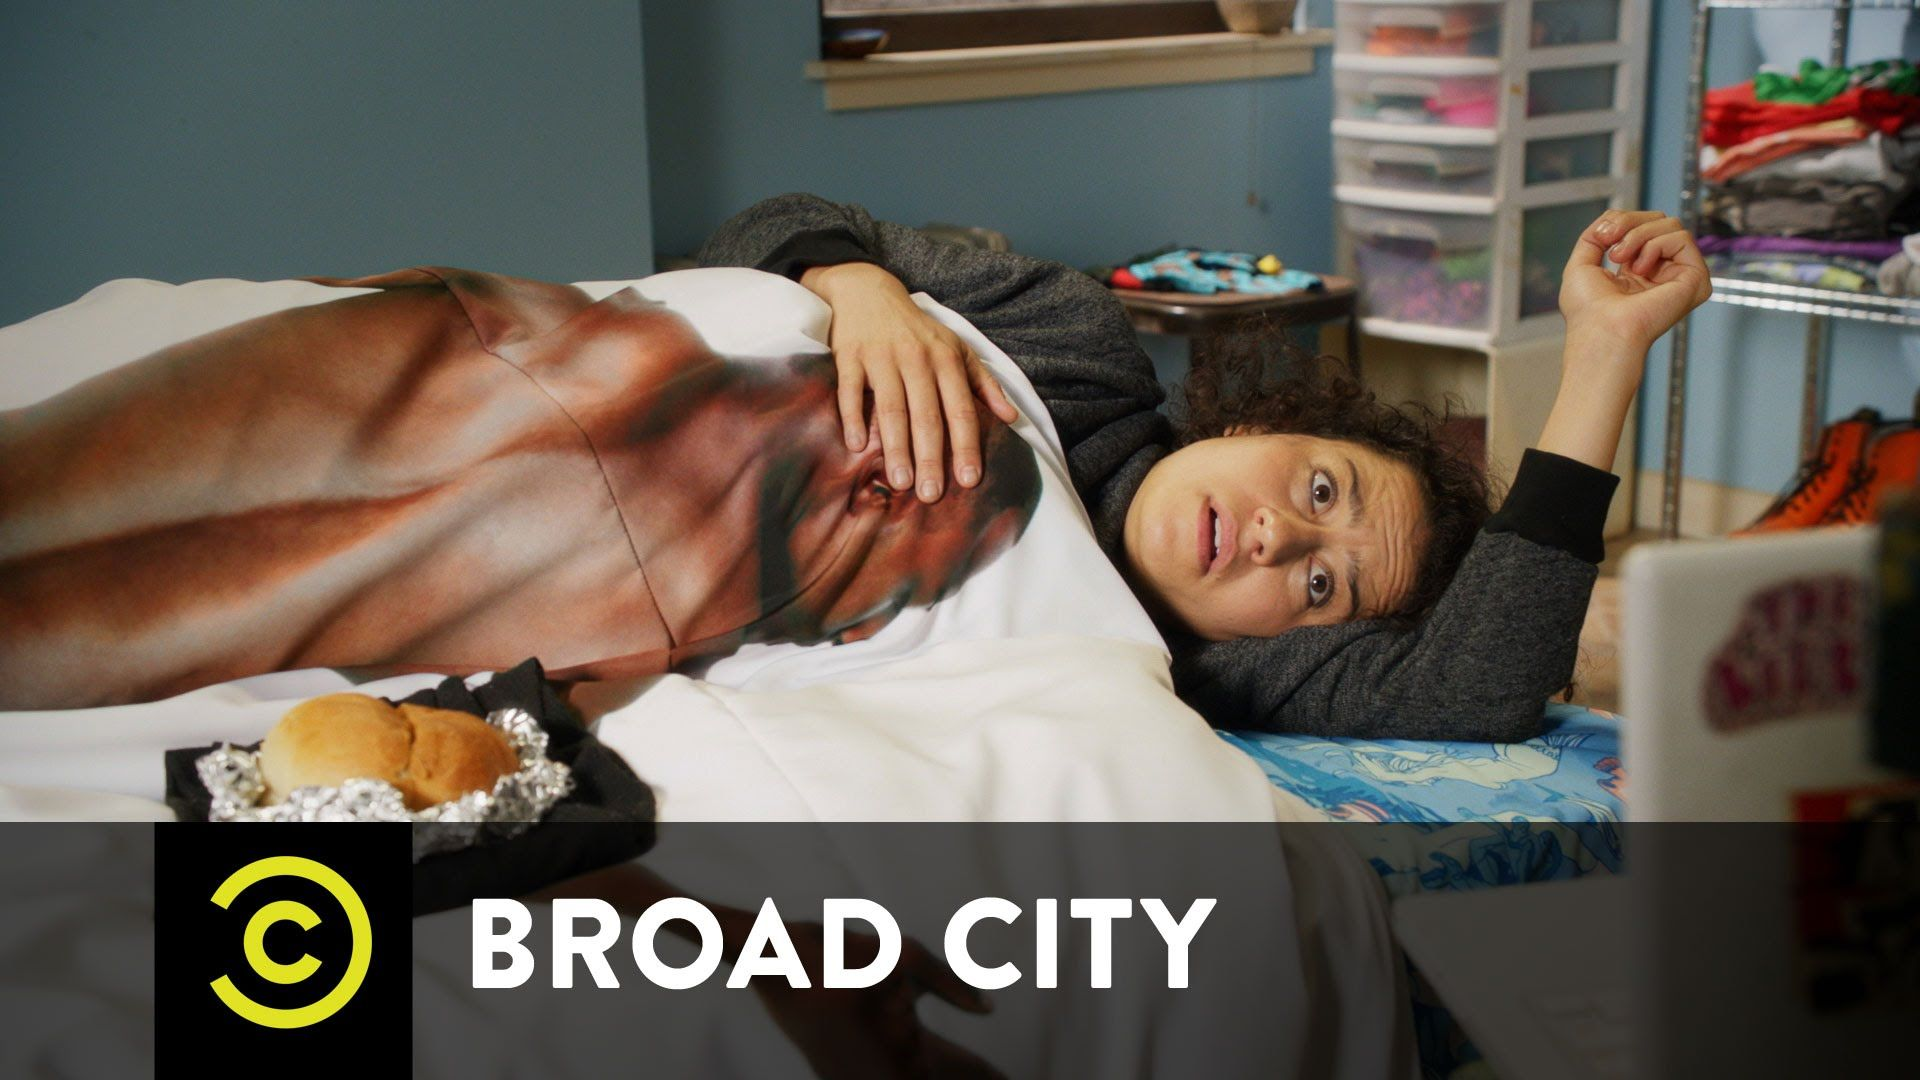 Hack Into Broad City - Yom Kippur - Glad the season finale comforter made it into season 3. #BroadCity